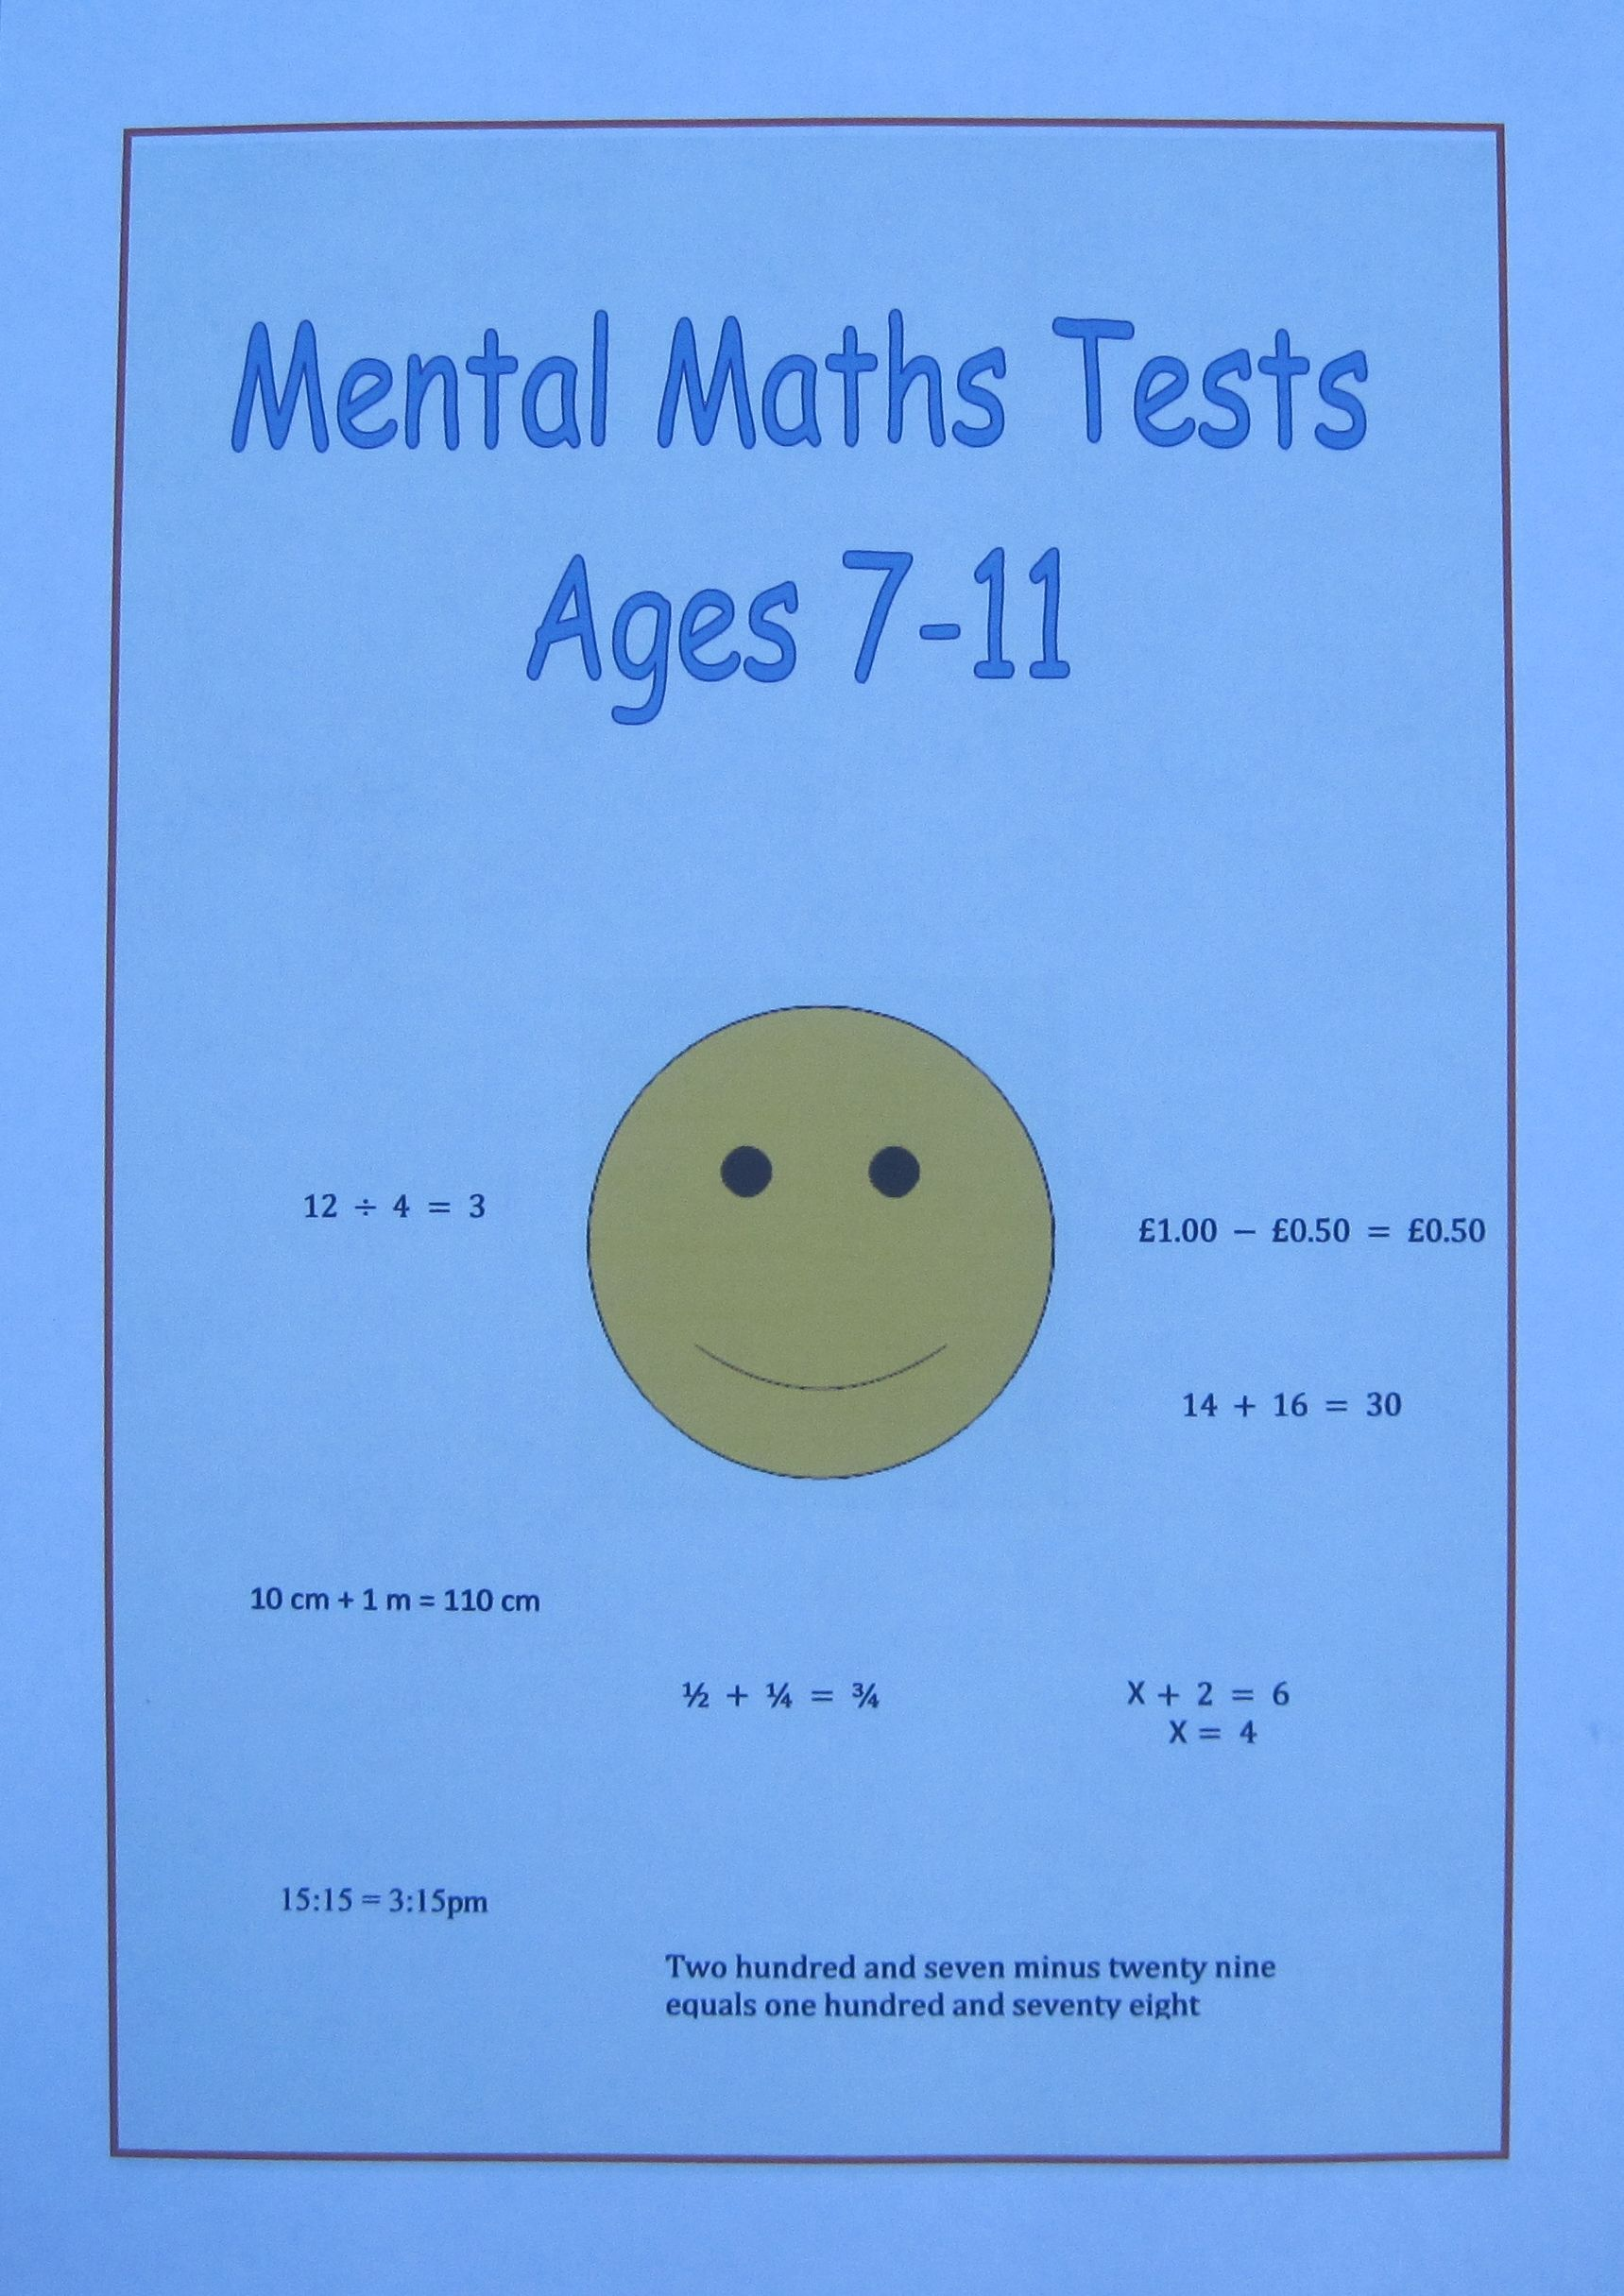 Mental Maths Tests For Each Year Group Aged 7 8 9 10 And 11 Years Old